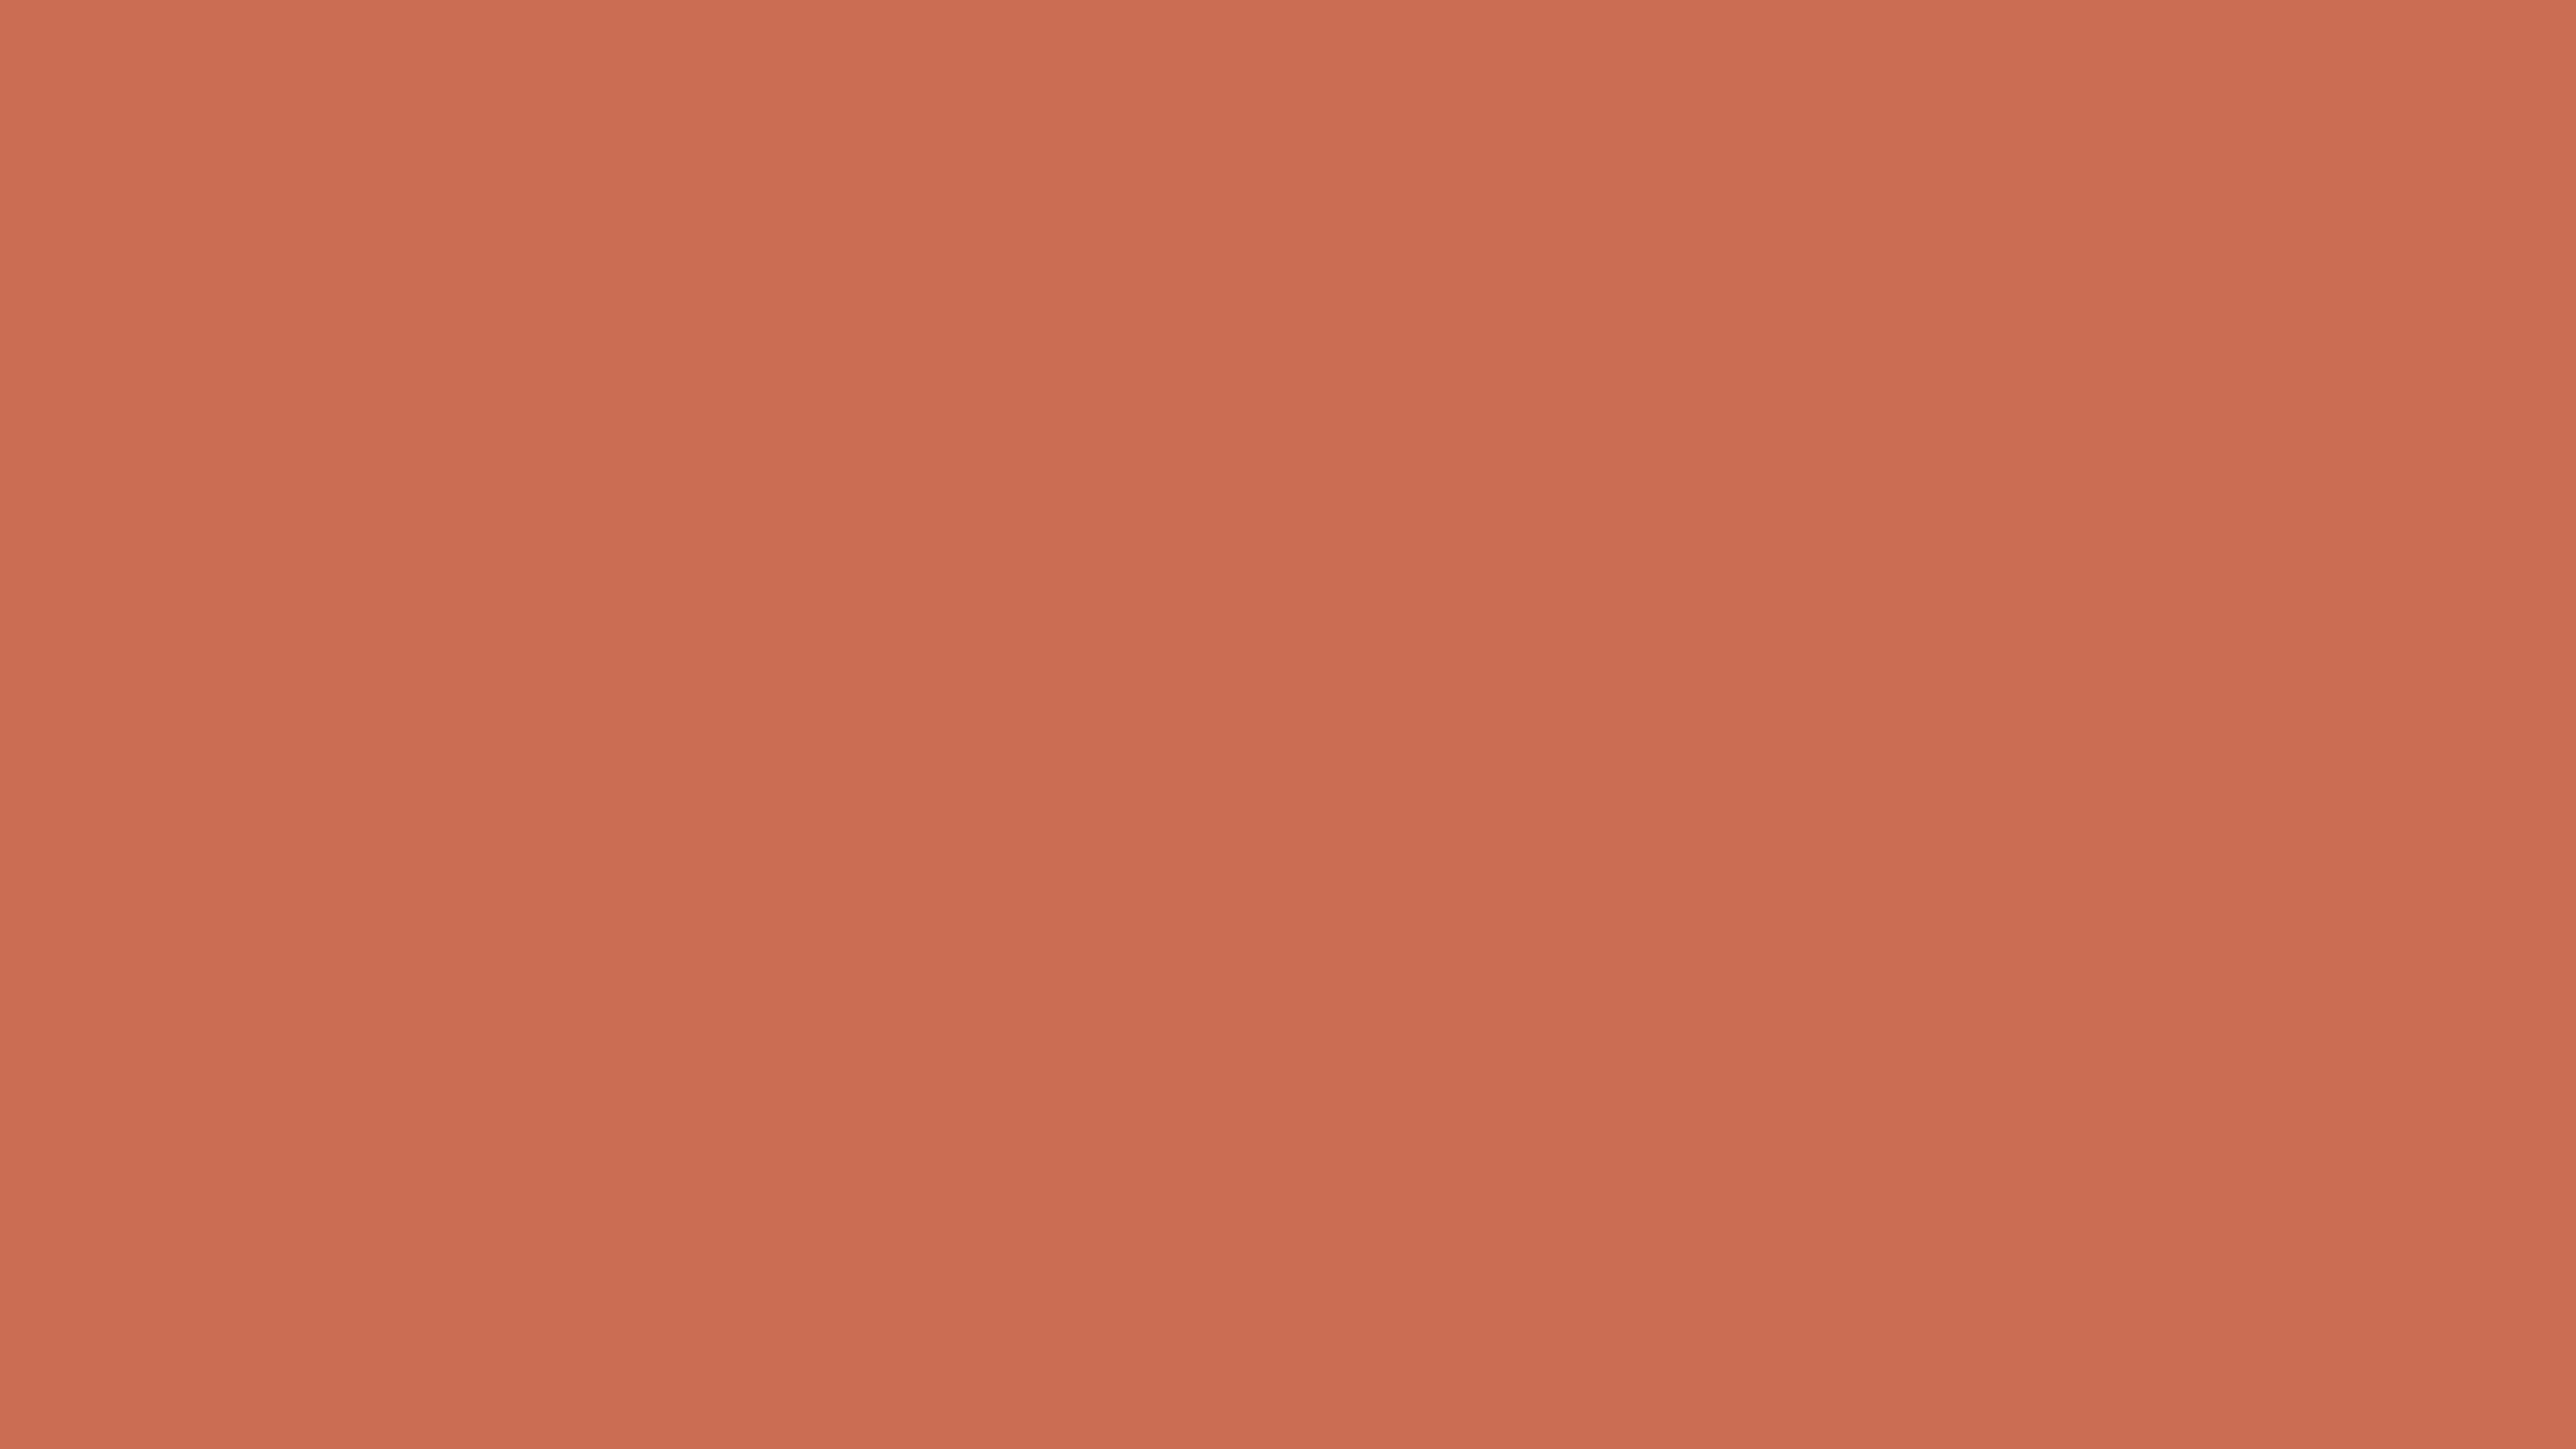 3840x2160 Copper Red Solid Color Background